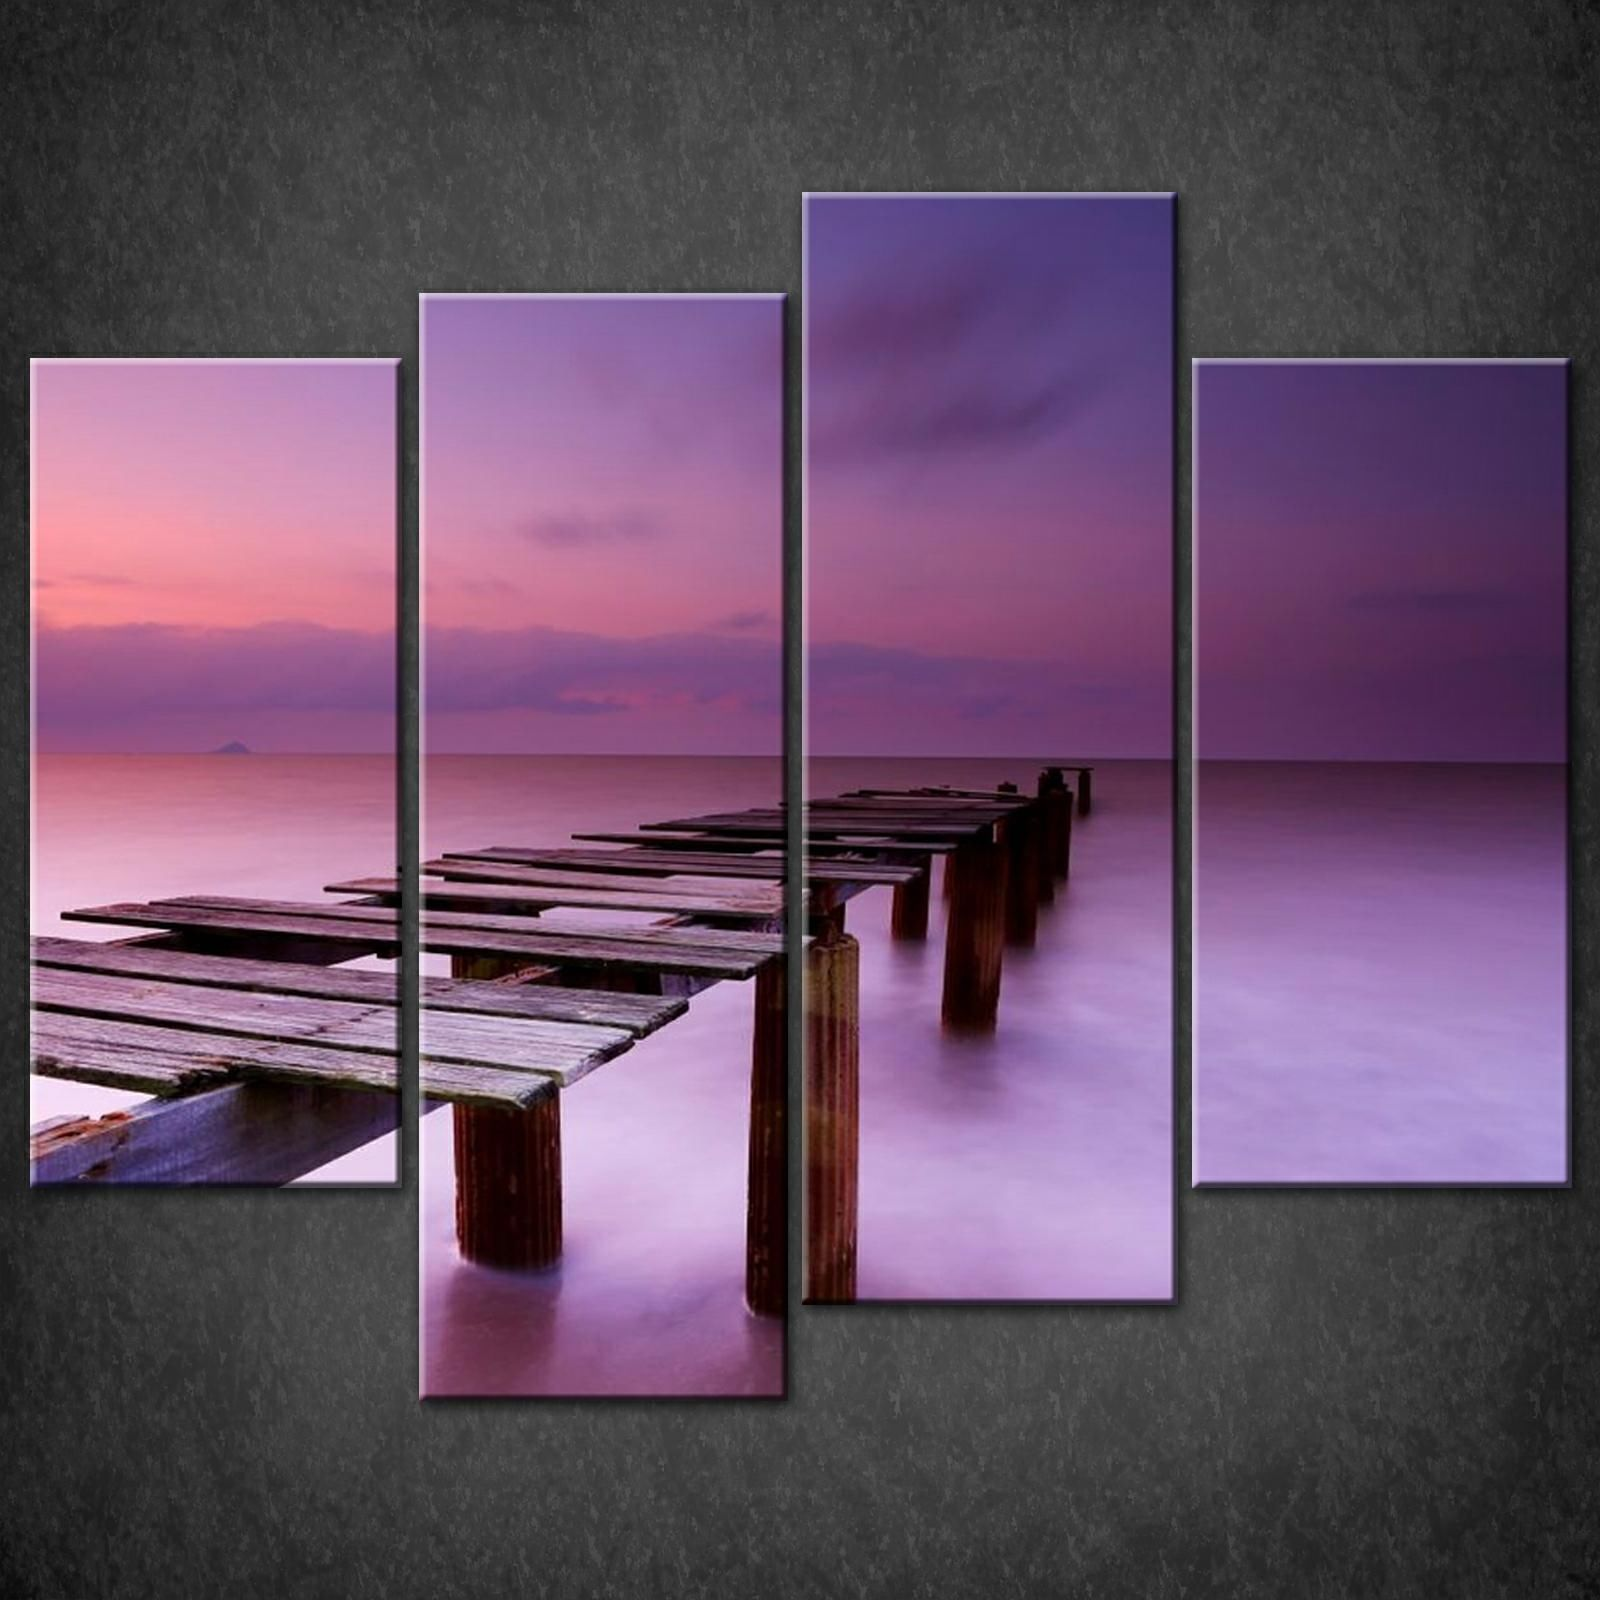 Wall Decor Prints Canvas : Purple sky dock canvas wall art pictures prints decor